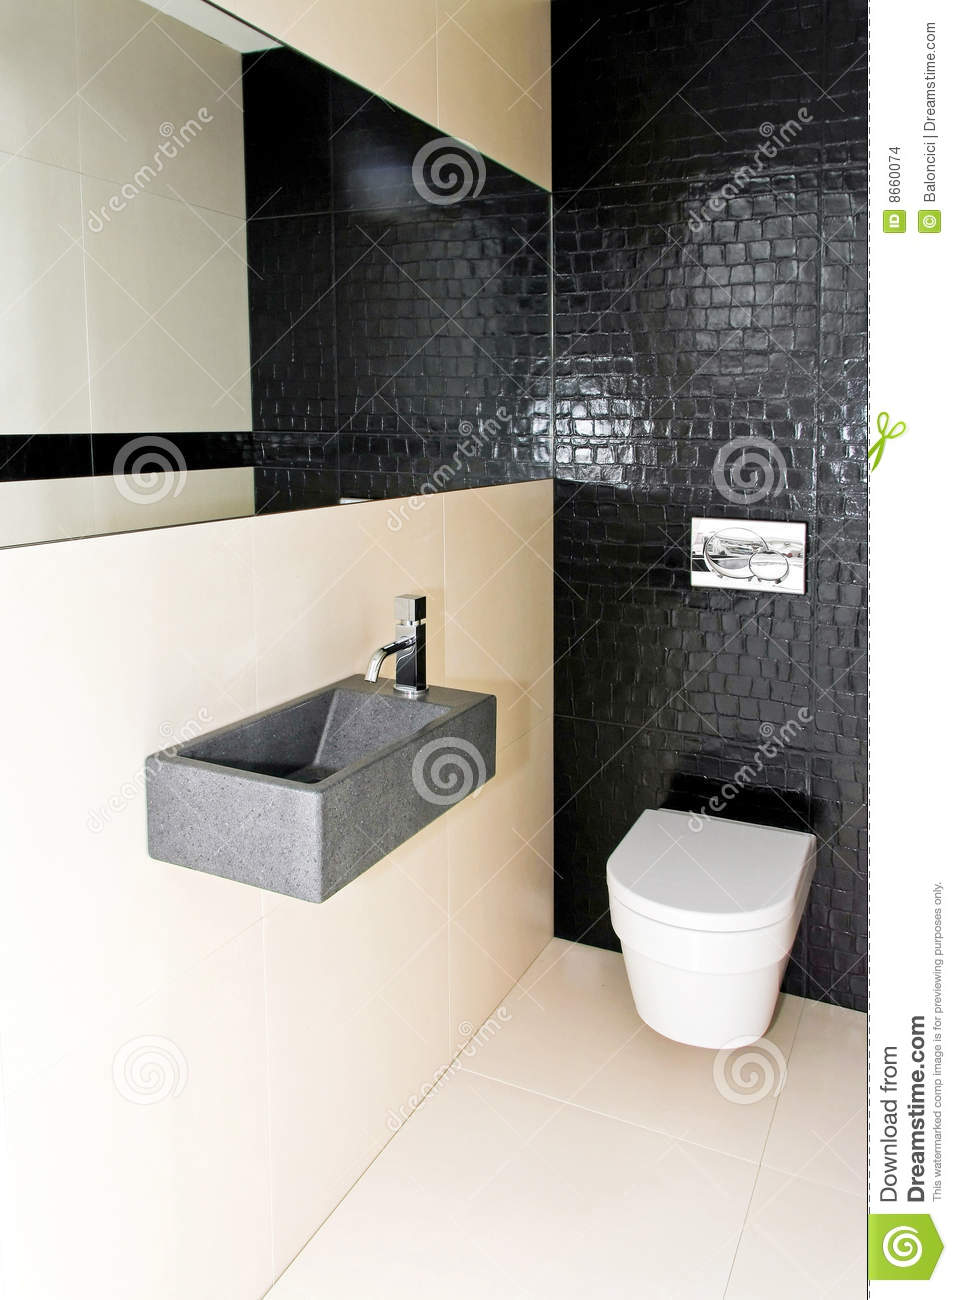 Small Toilet 2 Stock Photo. Image Of Stylish, Ceramics